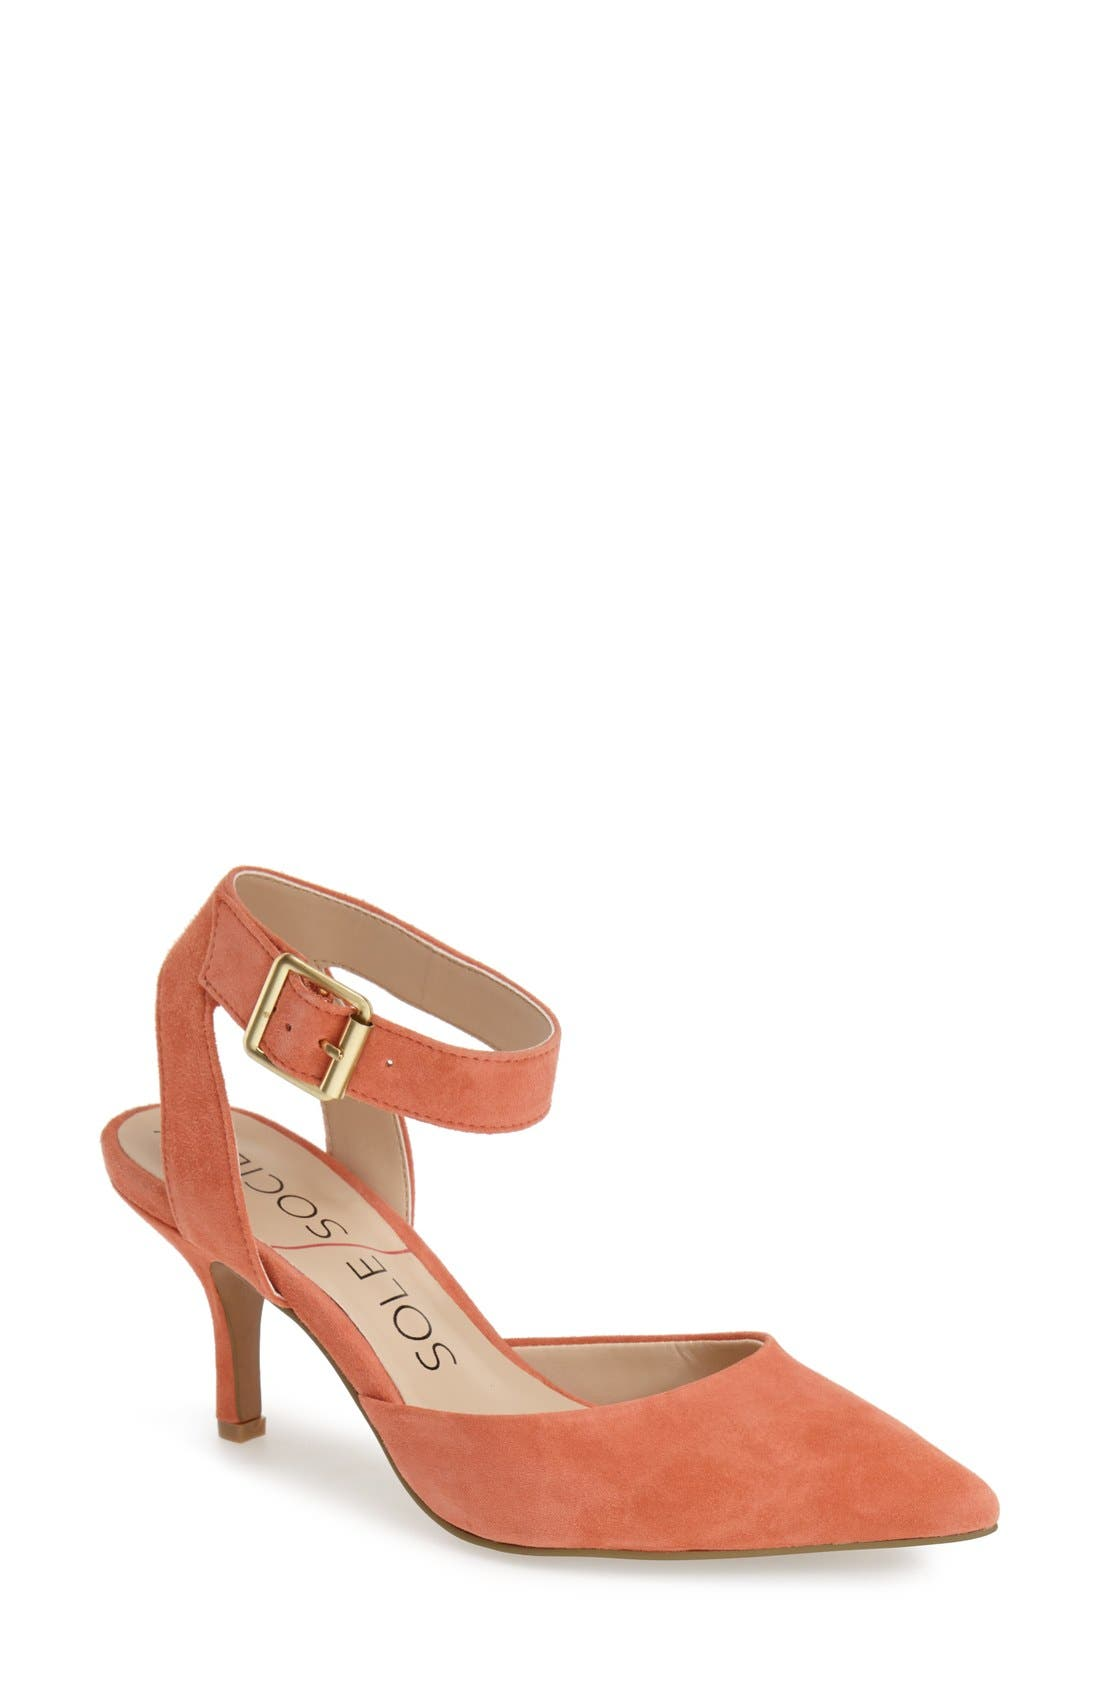 Main Image - Sole Society 'Olyvia' Suede Pump (Women)